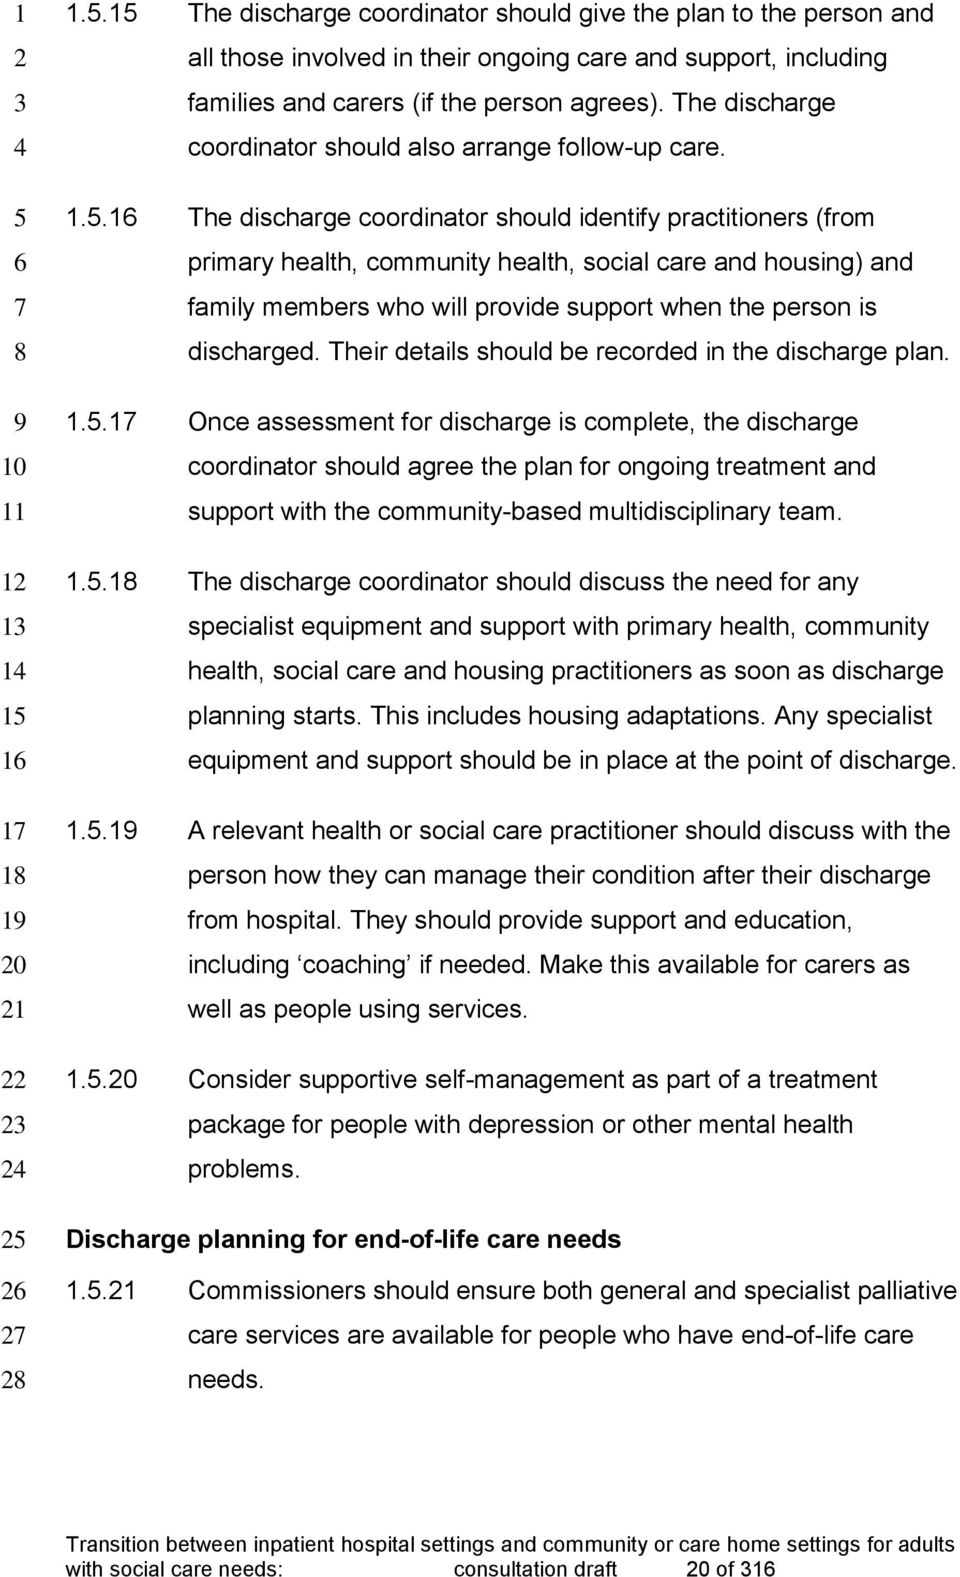 .1 The discharge coordinator should identify practitioners (from primary health, community health, social care and housing) and family members who will provide support when the person is discharged.